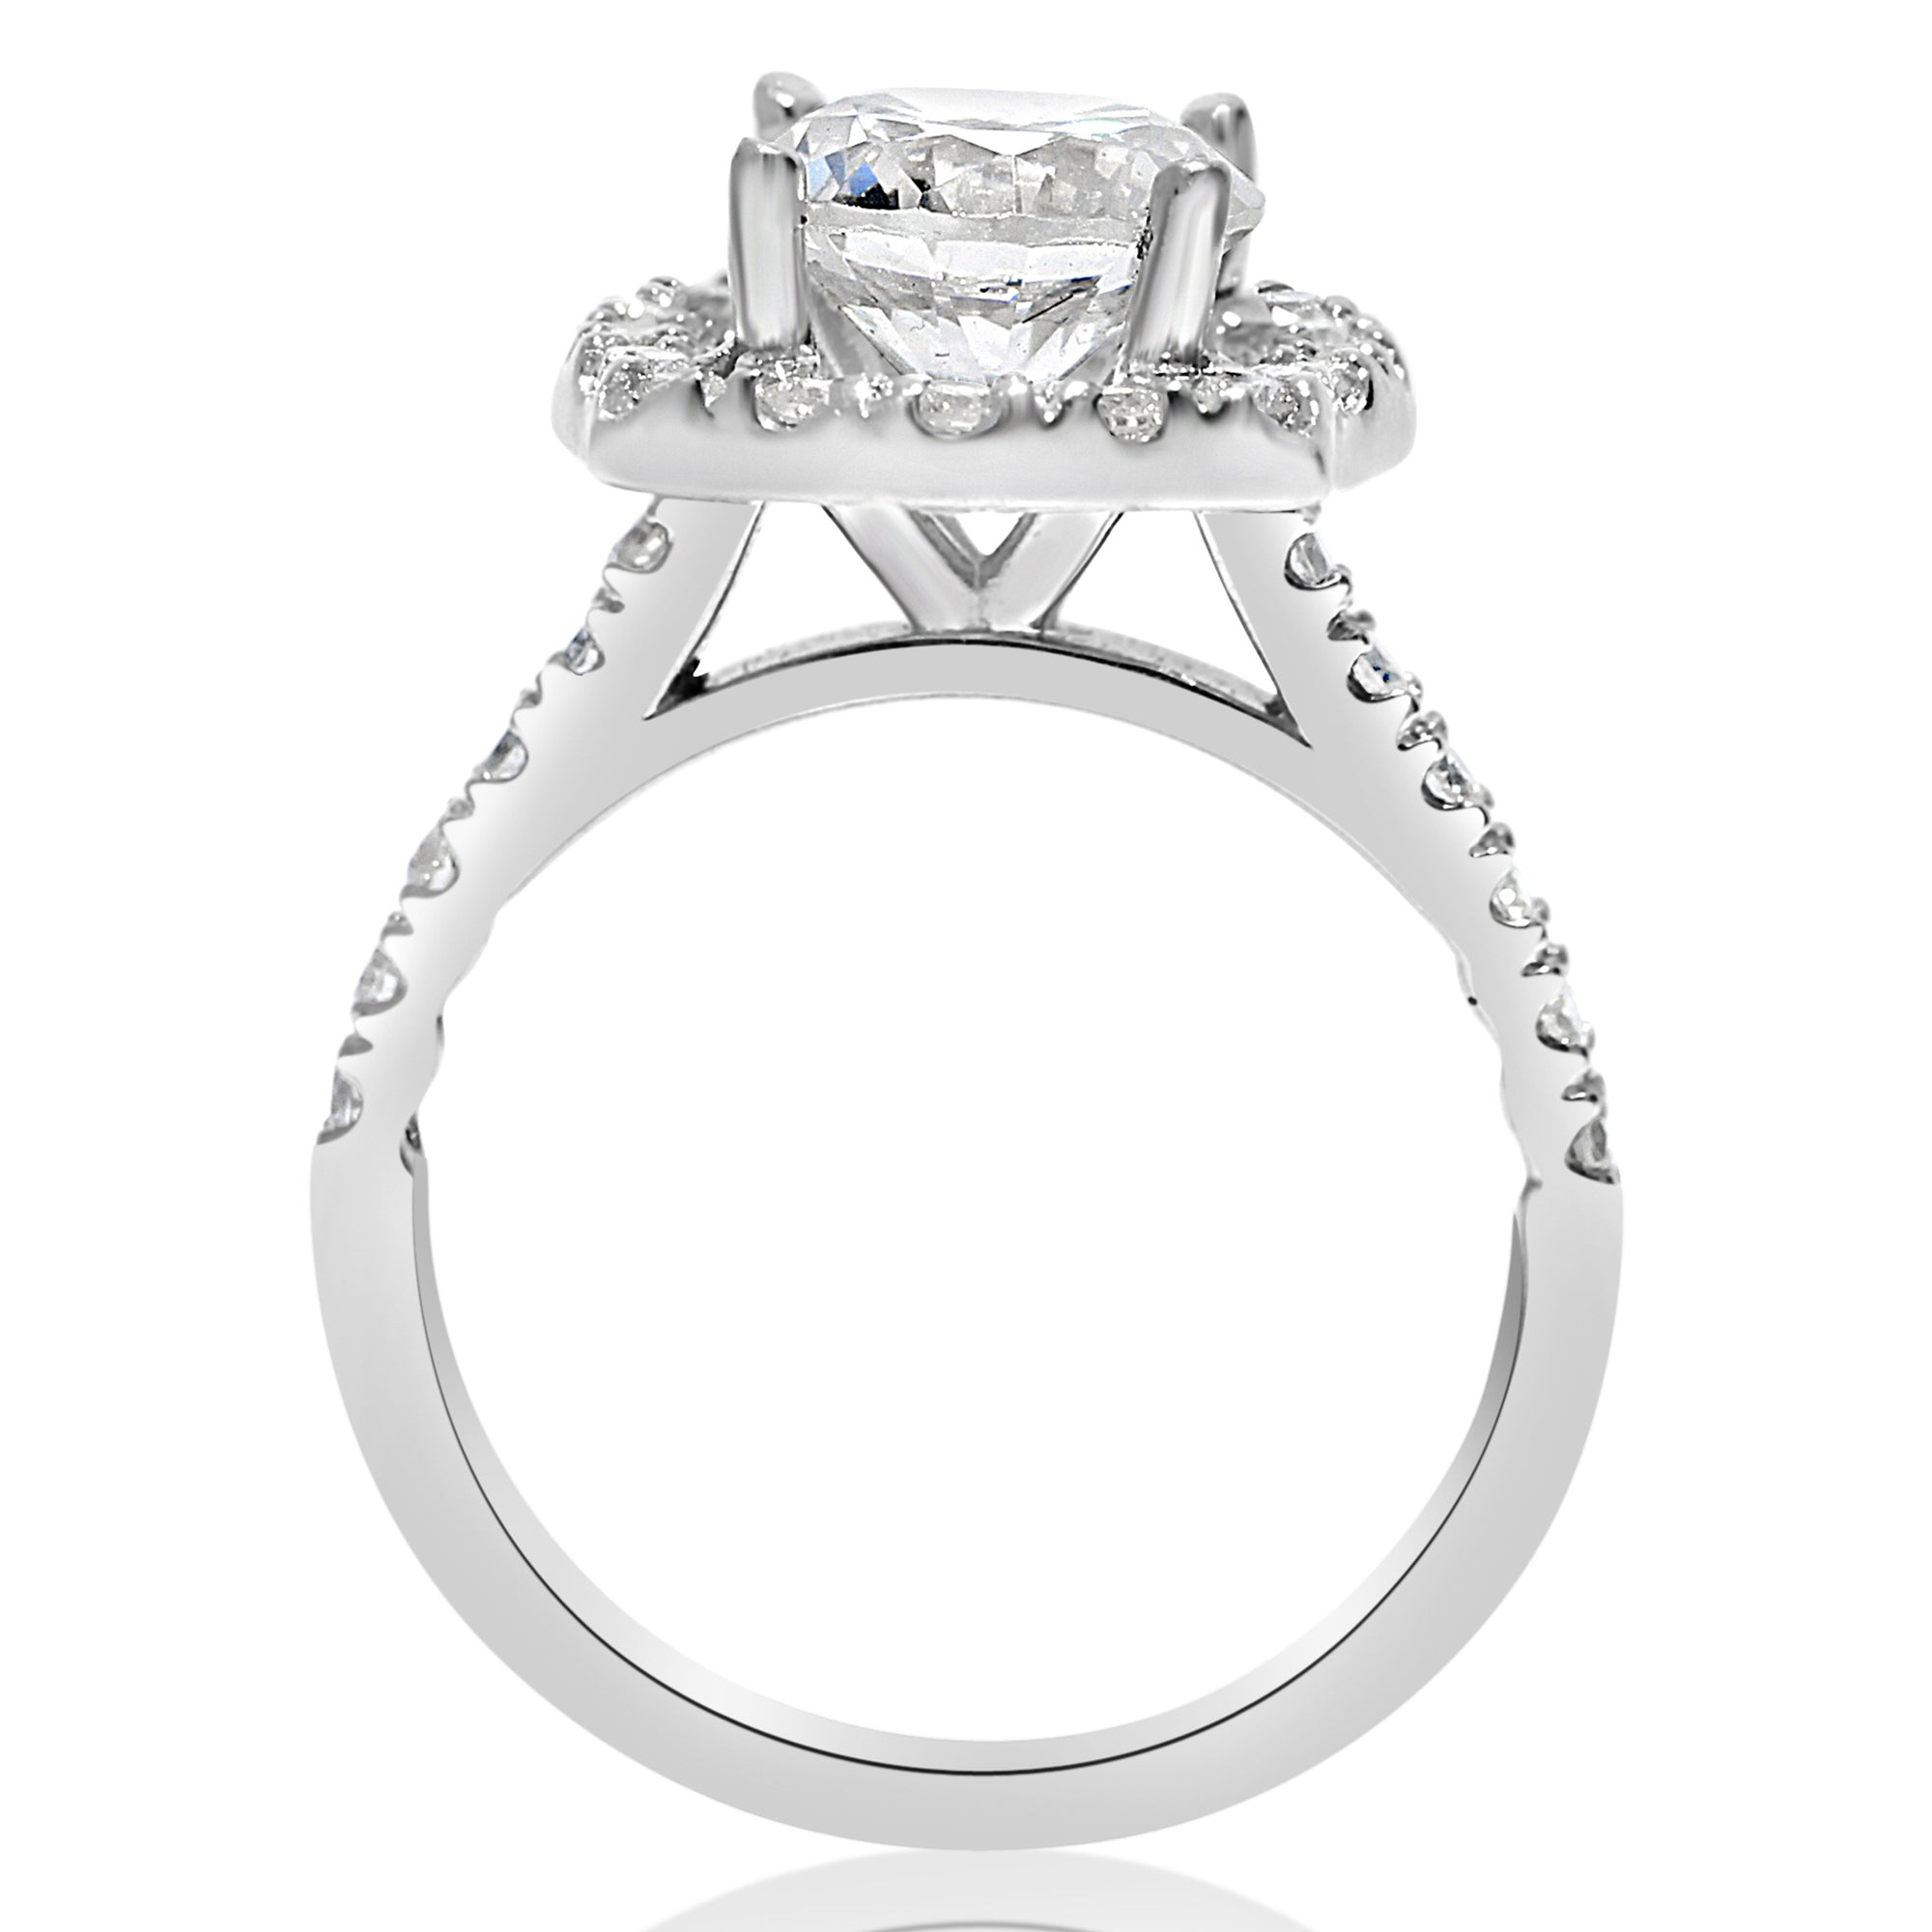 rings platinum today tdw overstock zirconia gemstone engagement g diamond and ring cubic product watches sapphire shipping h tacori jewelry free